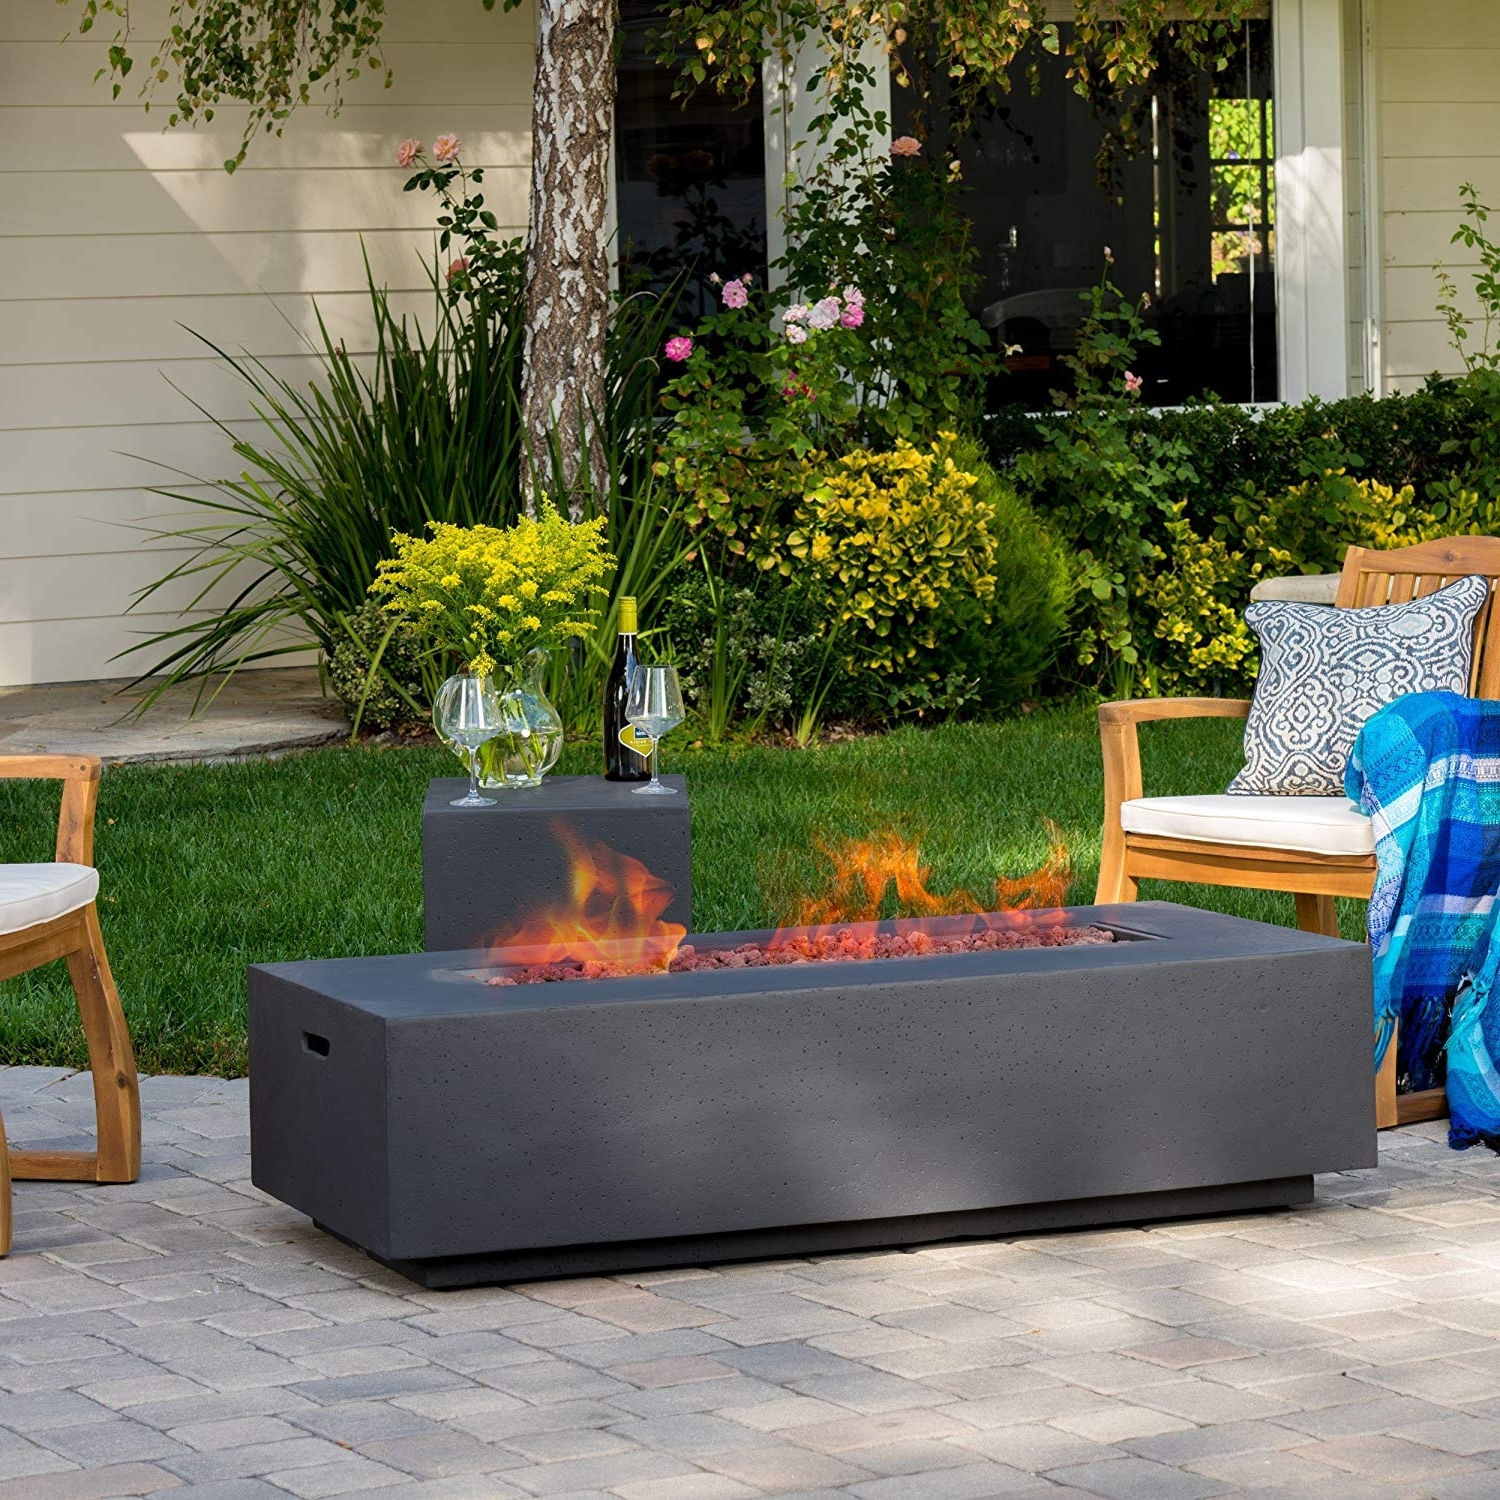 Jaxon Grey 6 Piece Rectangle Extension Dining Sets With Bench & Uph Chairs Regarding Newest Amazon: Jaxon Outdoor Fire Table With Lava Rocks & Tank Holder (Gallery 24 of 25)